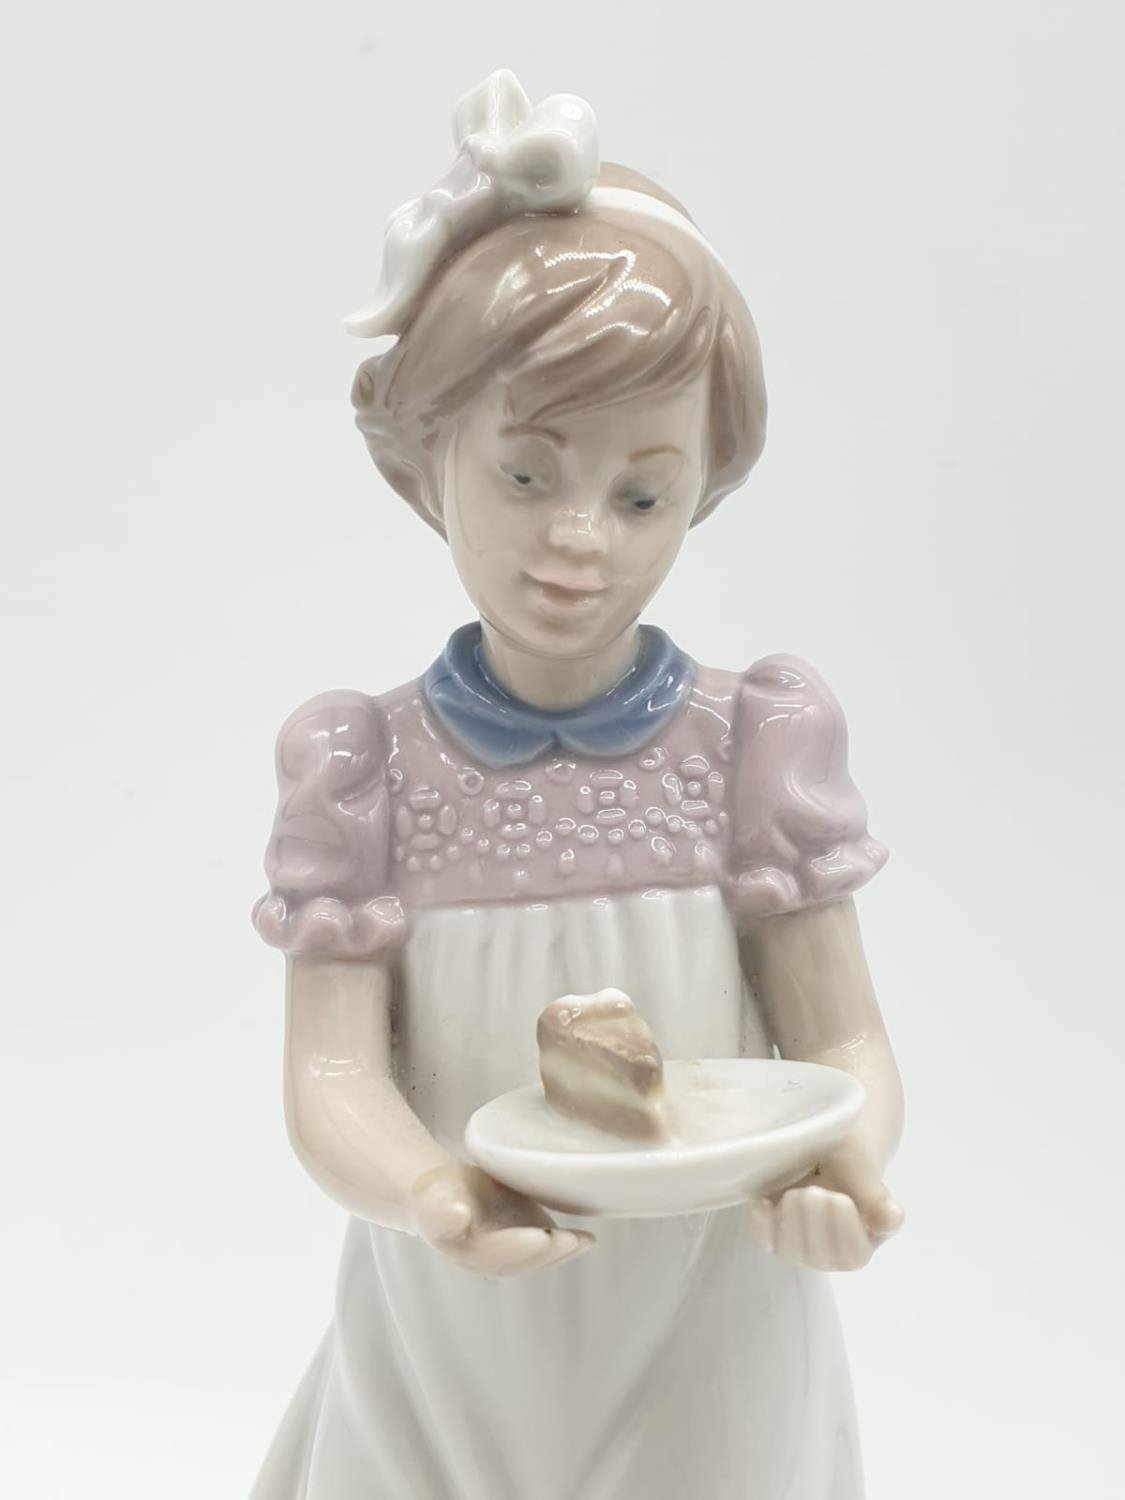 Lladro girl holding a cake on a plate. 20cm tall. - Image 2 of 6